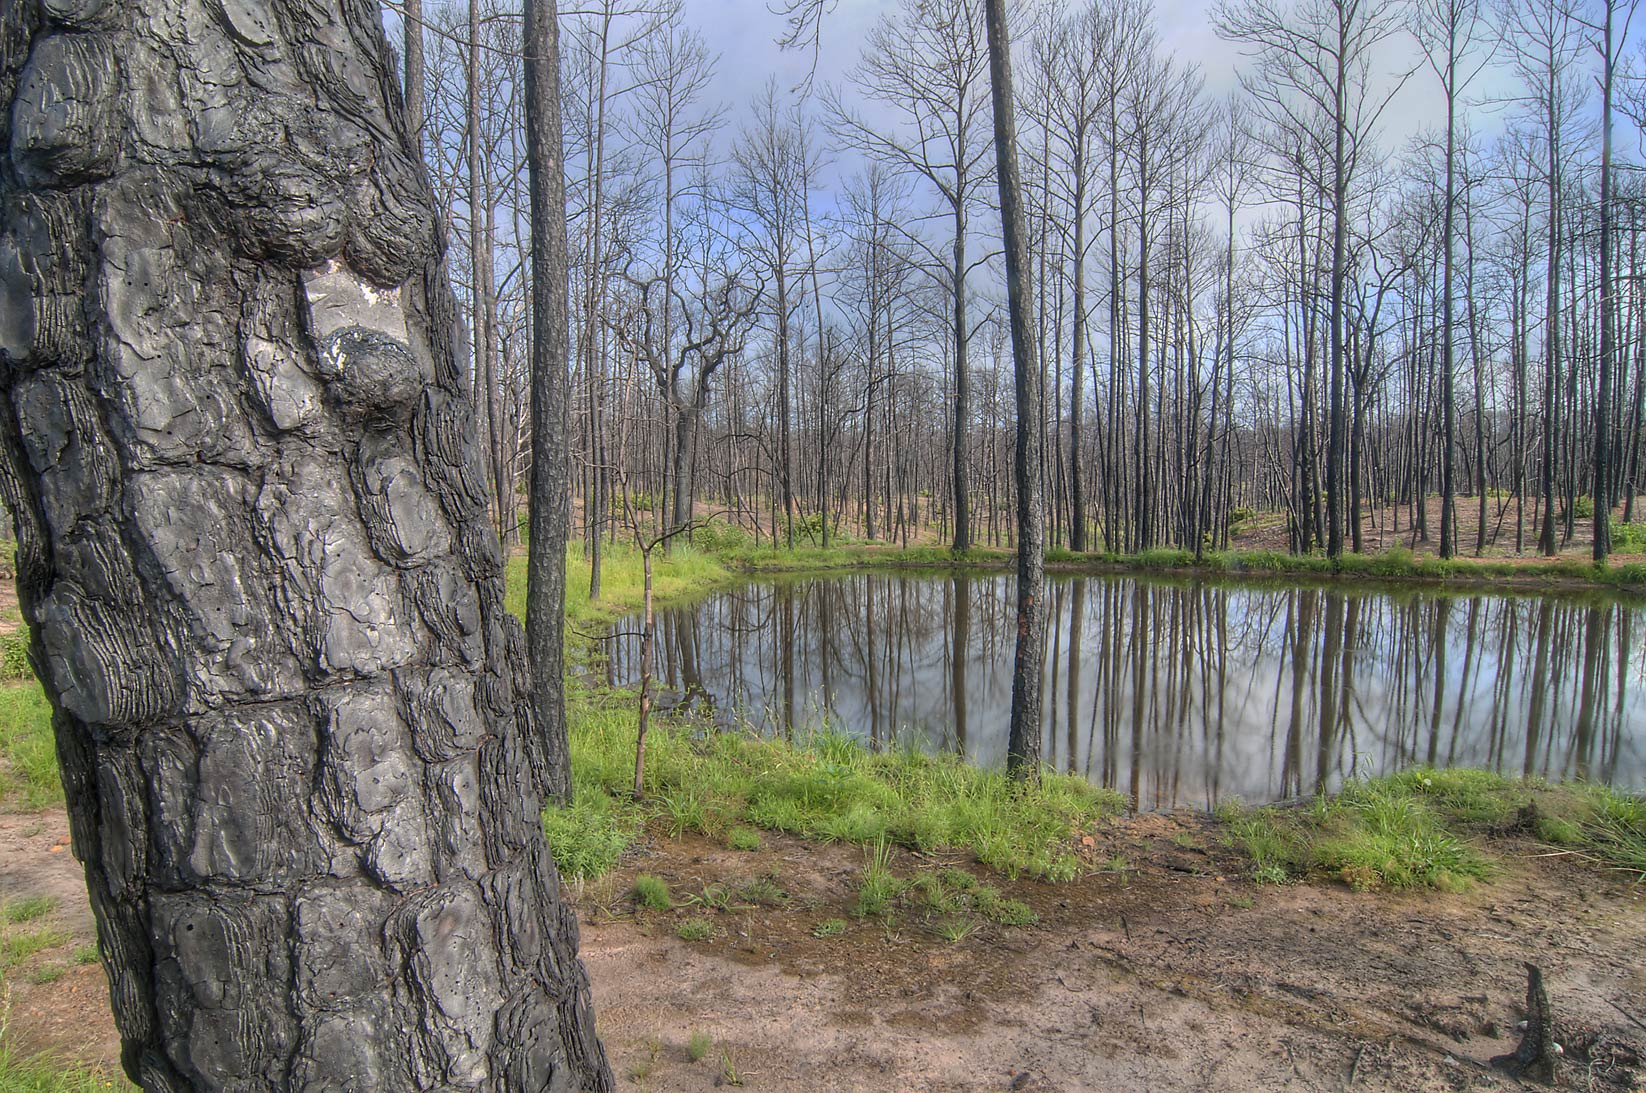 Toad Pond from Lost Pines Trail in Bastrop State Park. Bastrop, Texas